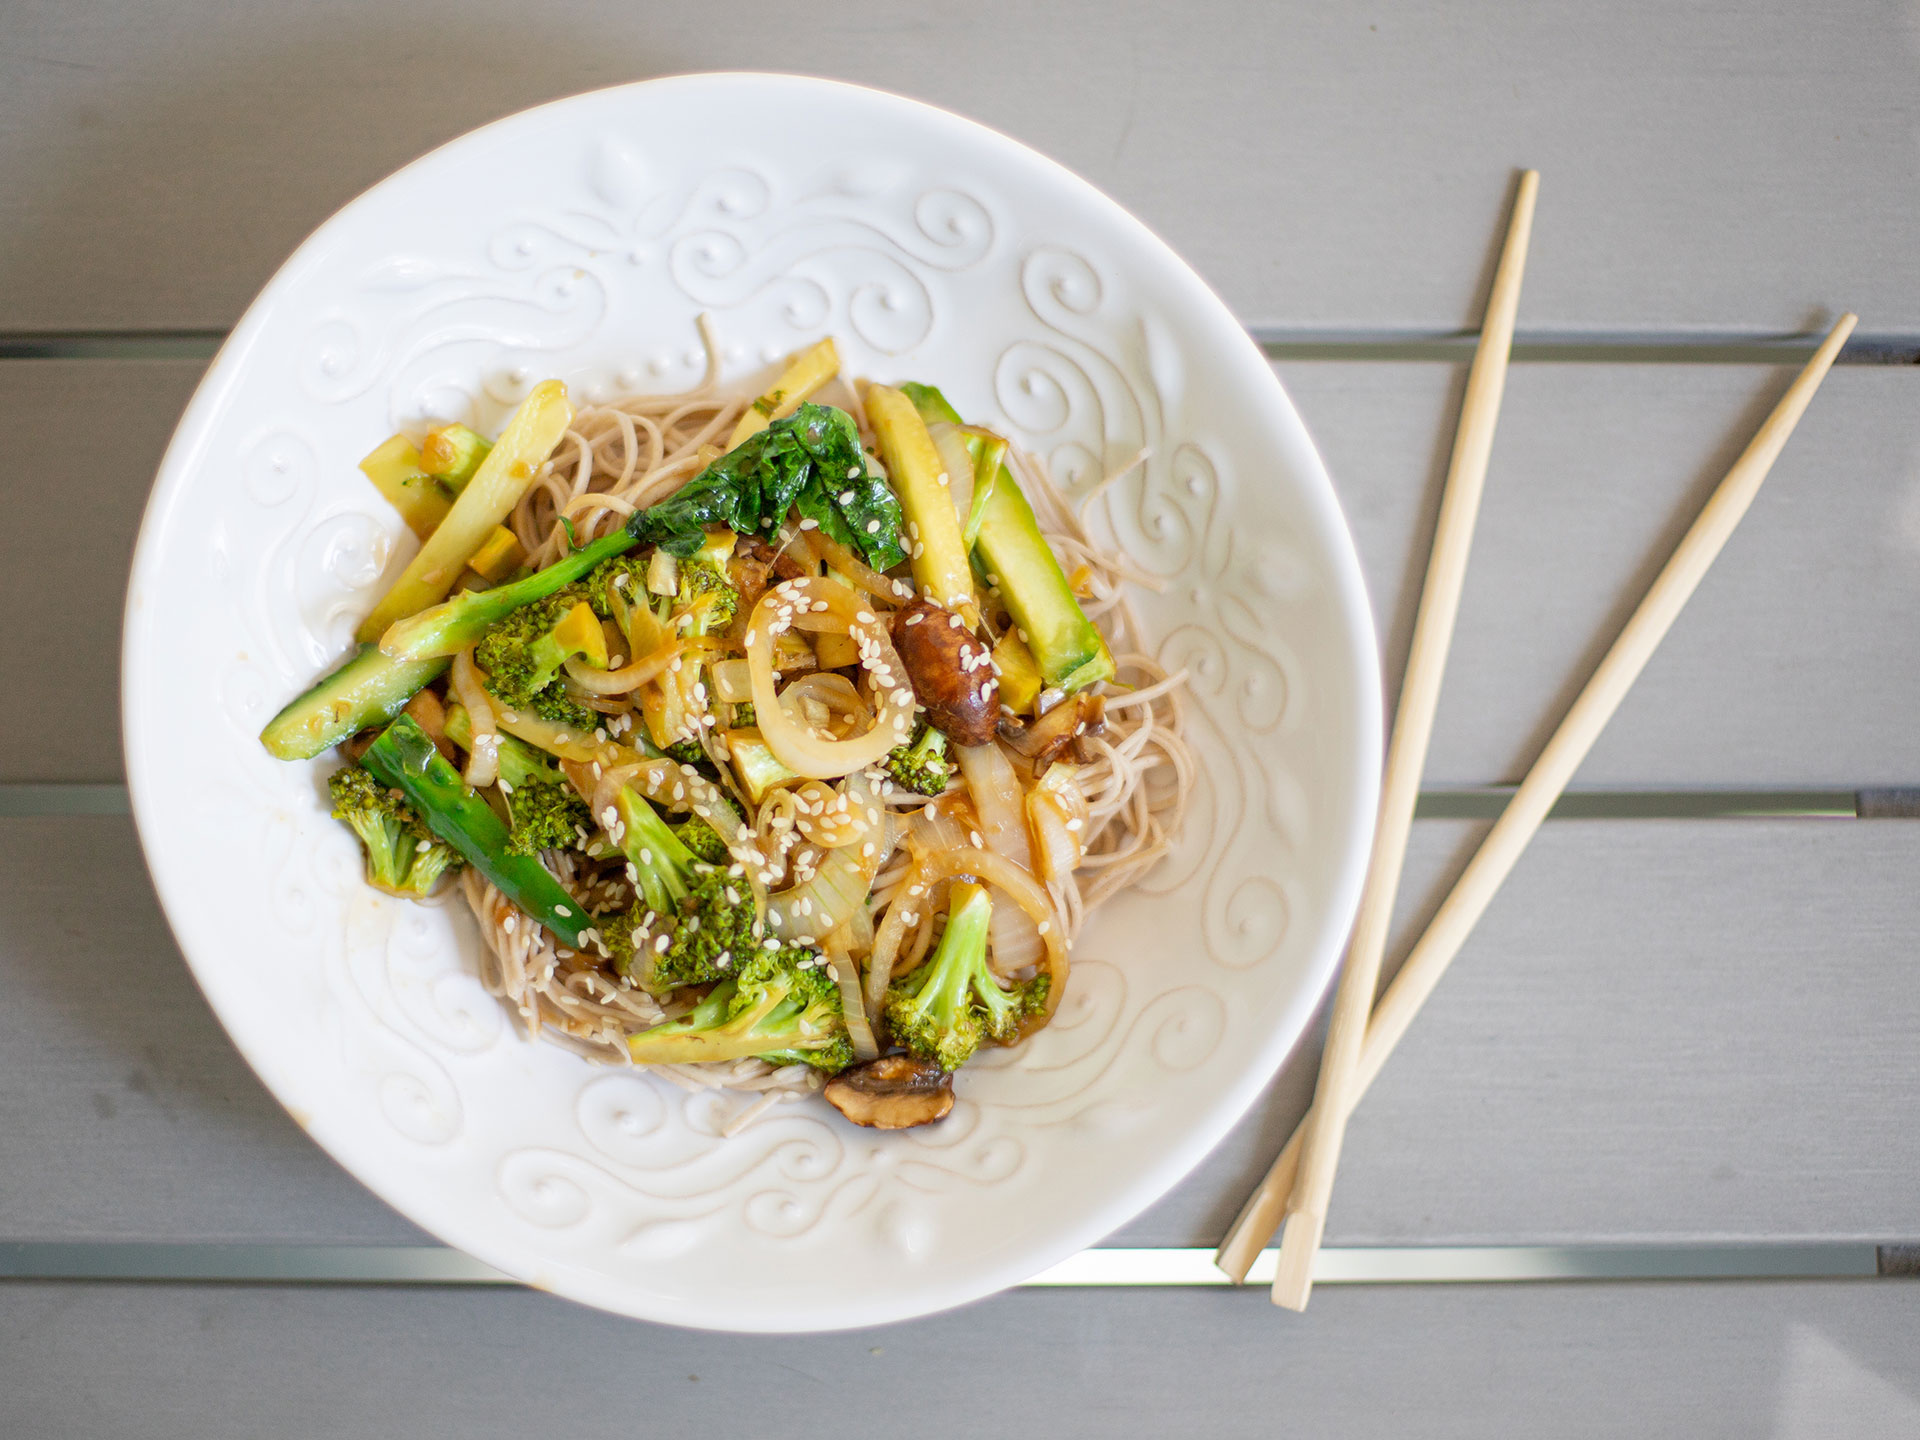 Chinese Broccoli, Mushrooms & Cucumber with Soba Noodles Recipe